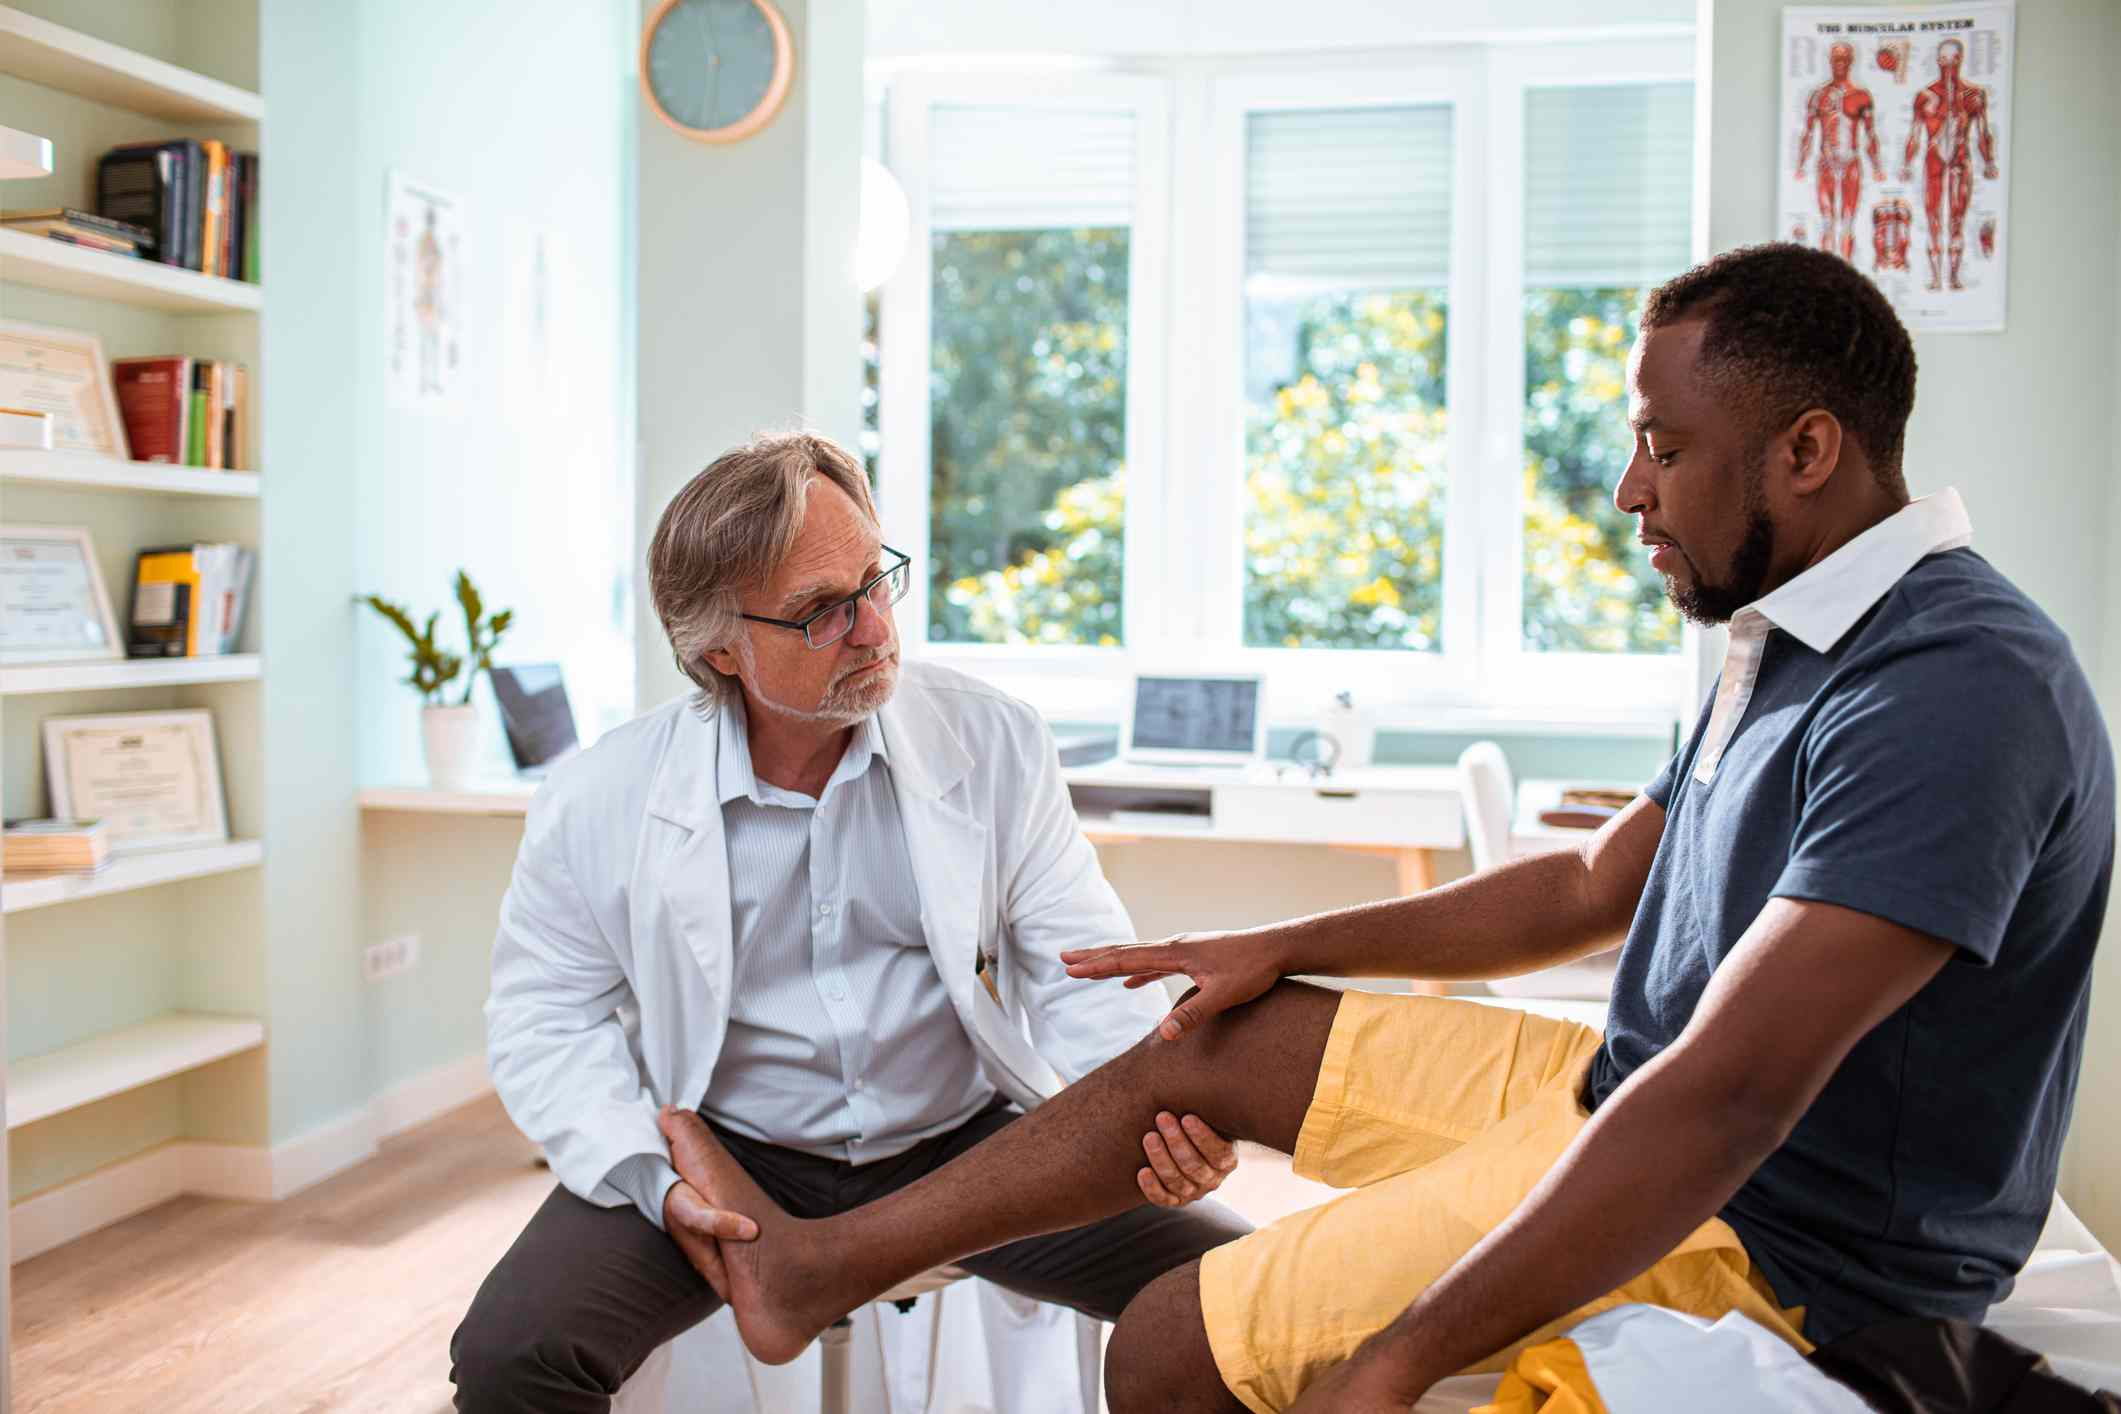 Black patient discusses joint pain with doctor